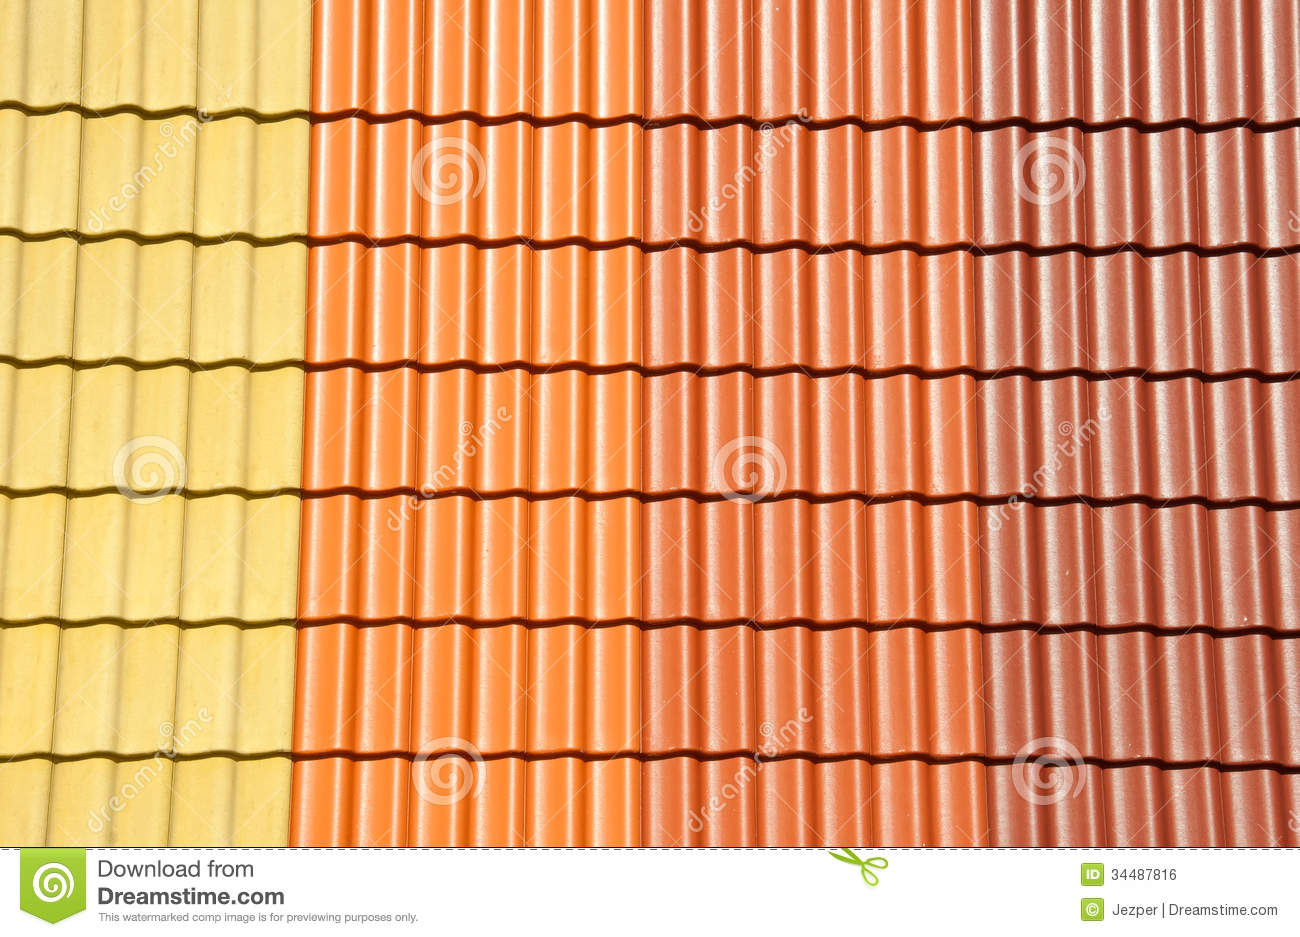 Roof Tiles Colors Stock Photo Image Of Close Design: different design and colors of tiles